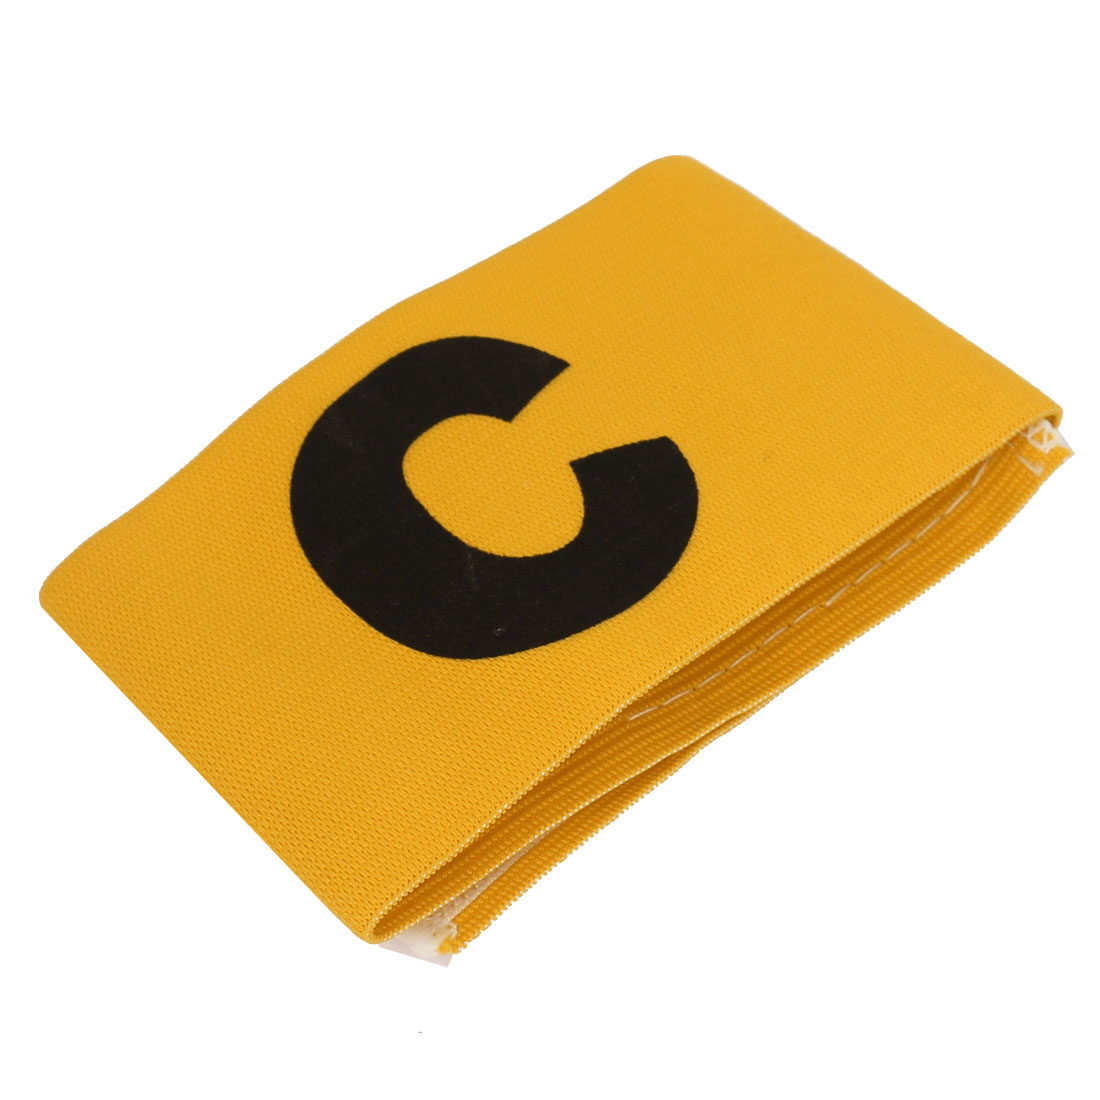 Yellow Elastic Fabric Football Soccer Captain Arm Band with Black Letter C Printed